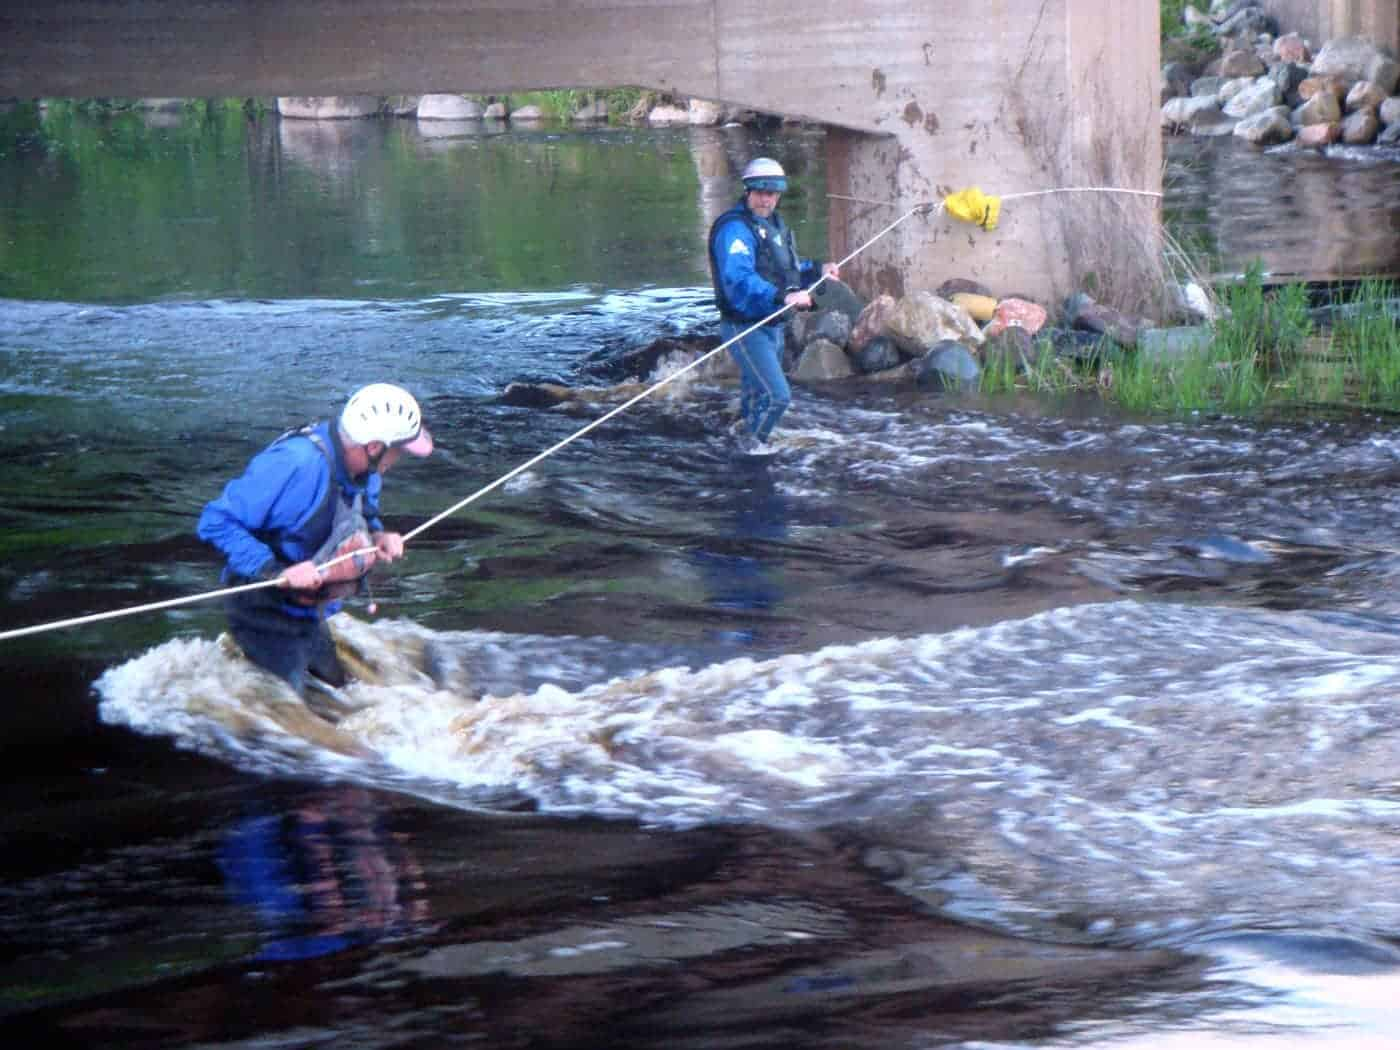 4 – Fire Department river rescue stream crossing training